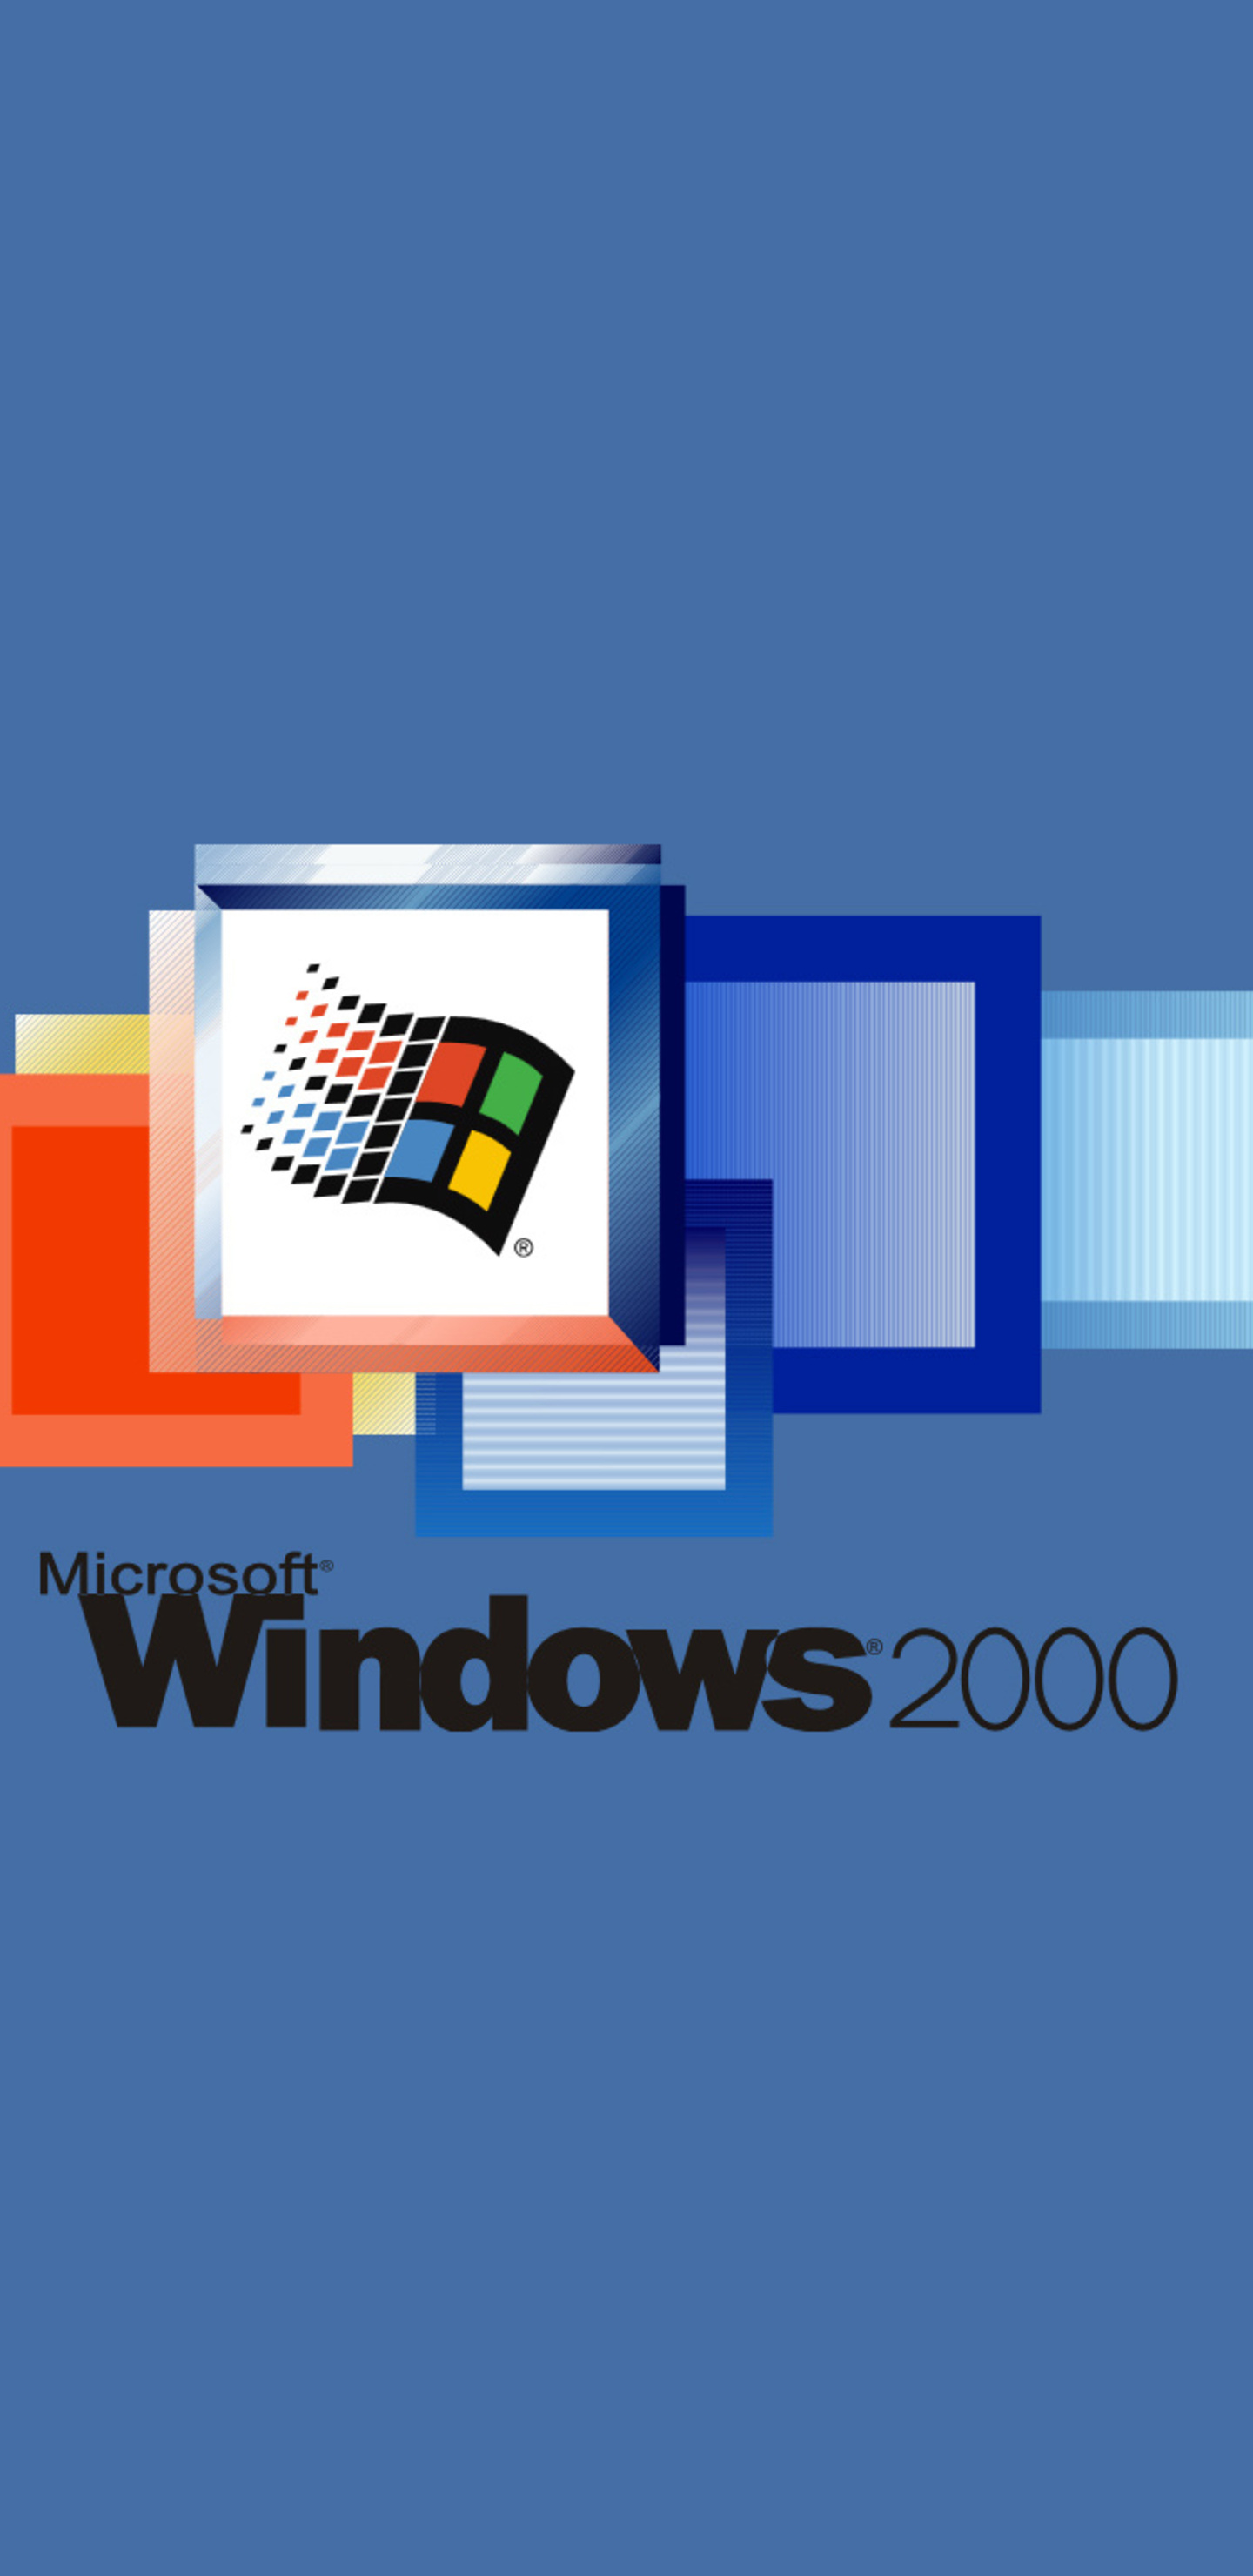 windows-2000-2y.jpg